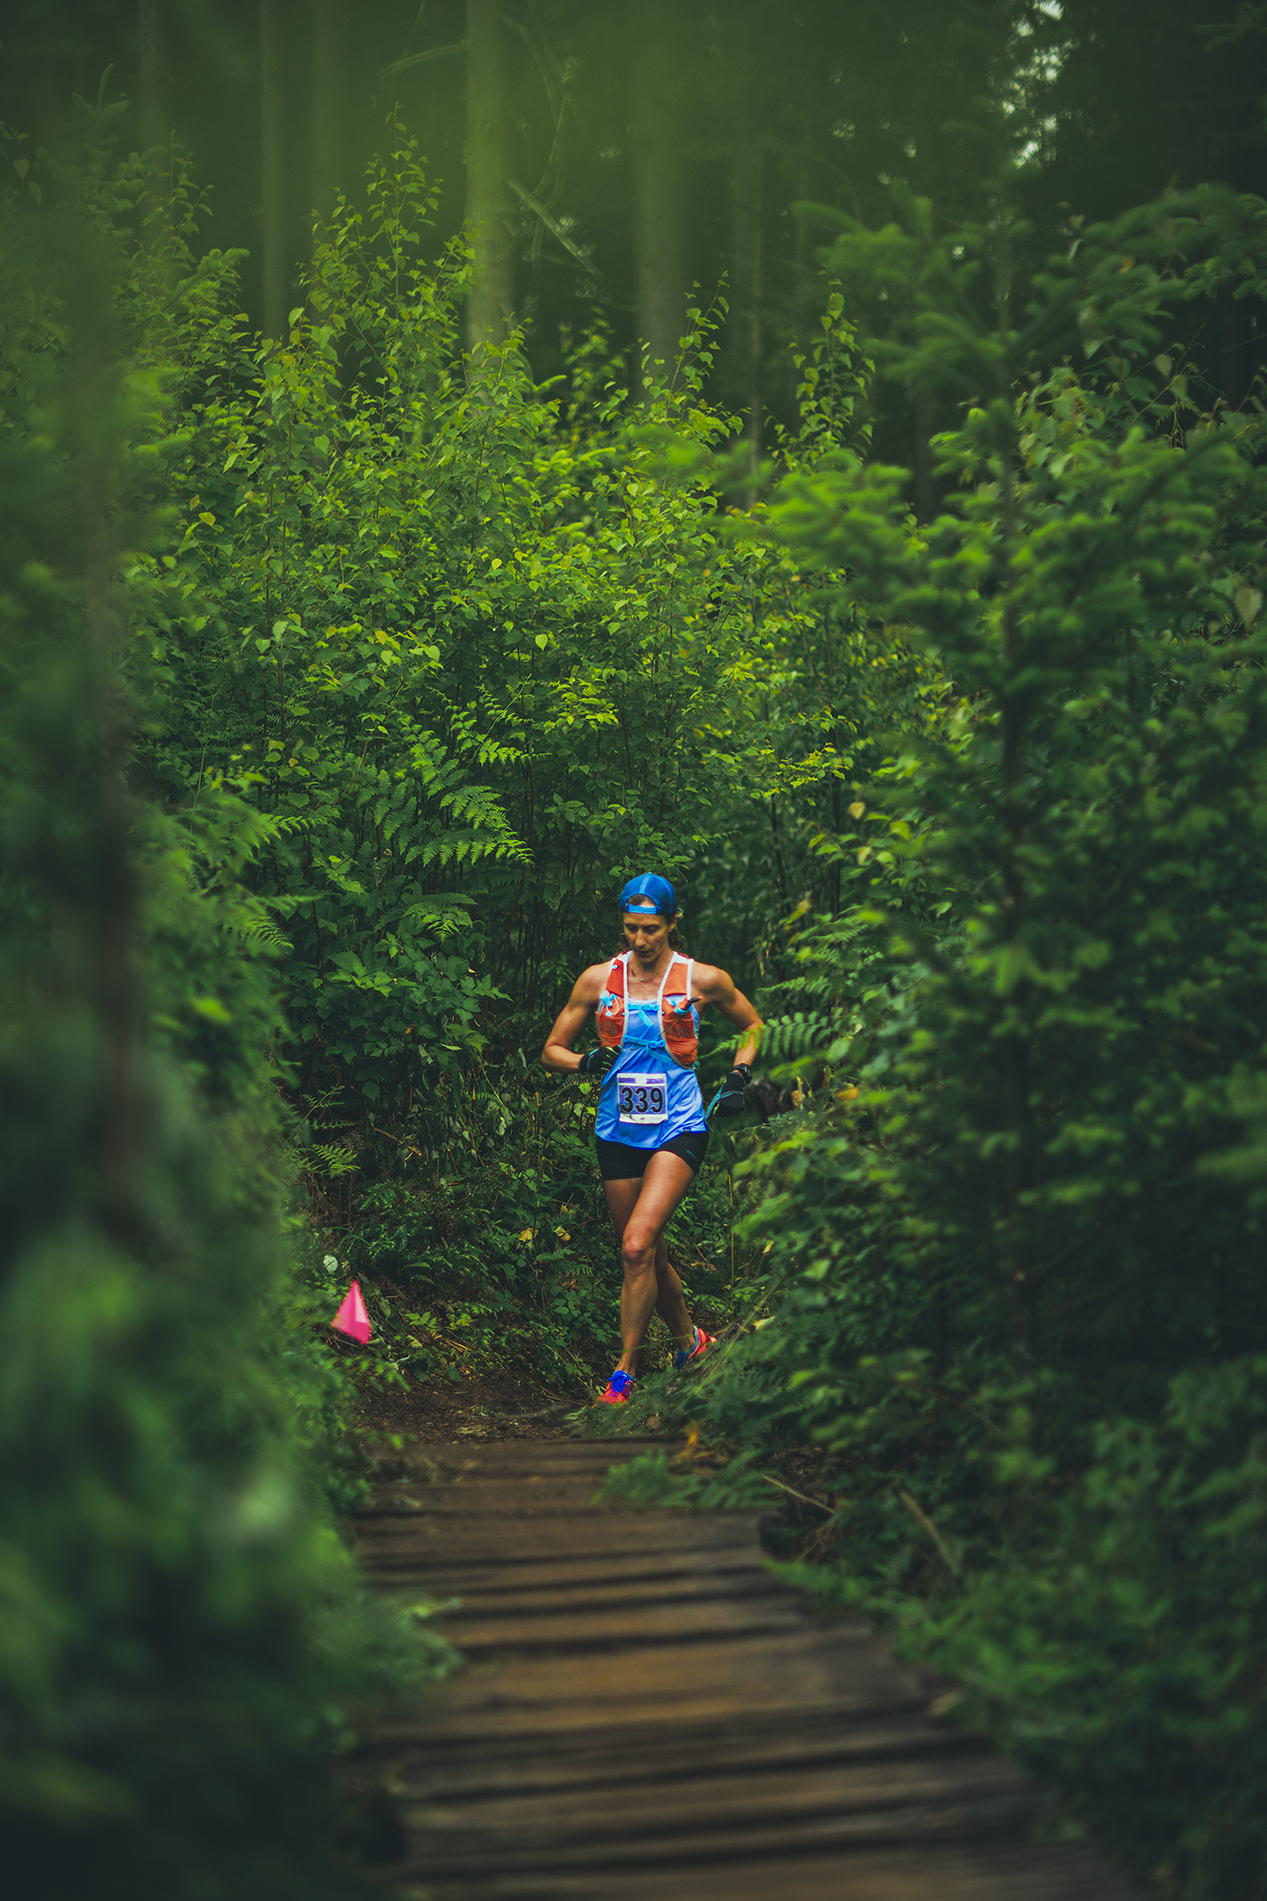 Fraser Valley Trail Races - Bear Mountain - IMG_2364 by Brice Ferre Studio - Vancouver Portrait Adventure and Athlete Photographer.jpg